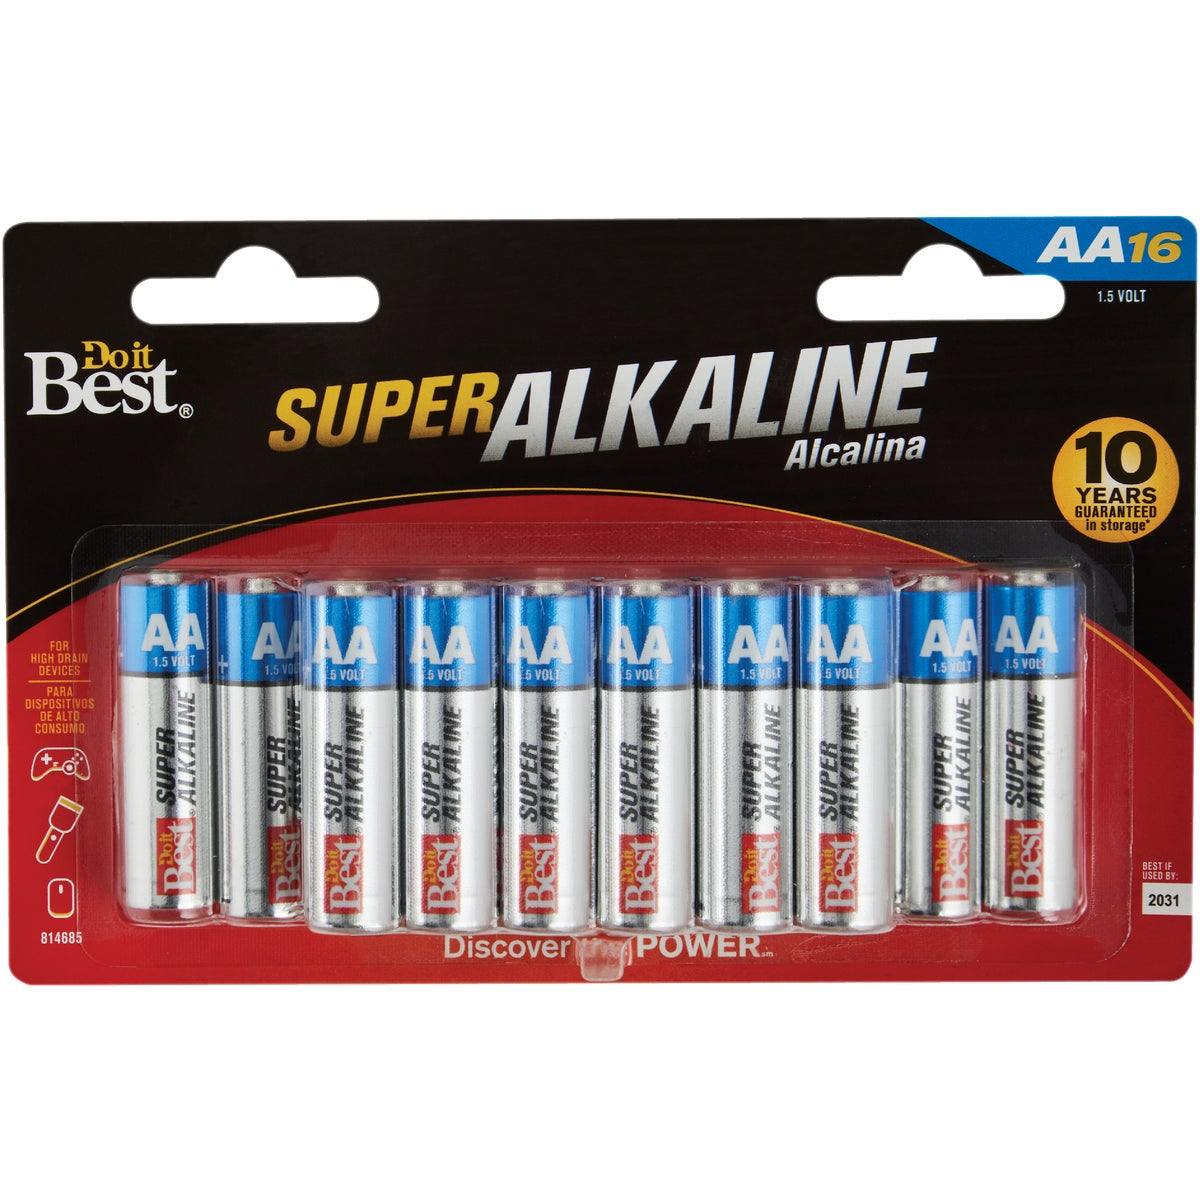 16PK DIB AA ALK BATTERY - DIB815-16SC by Ray O Vac